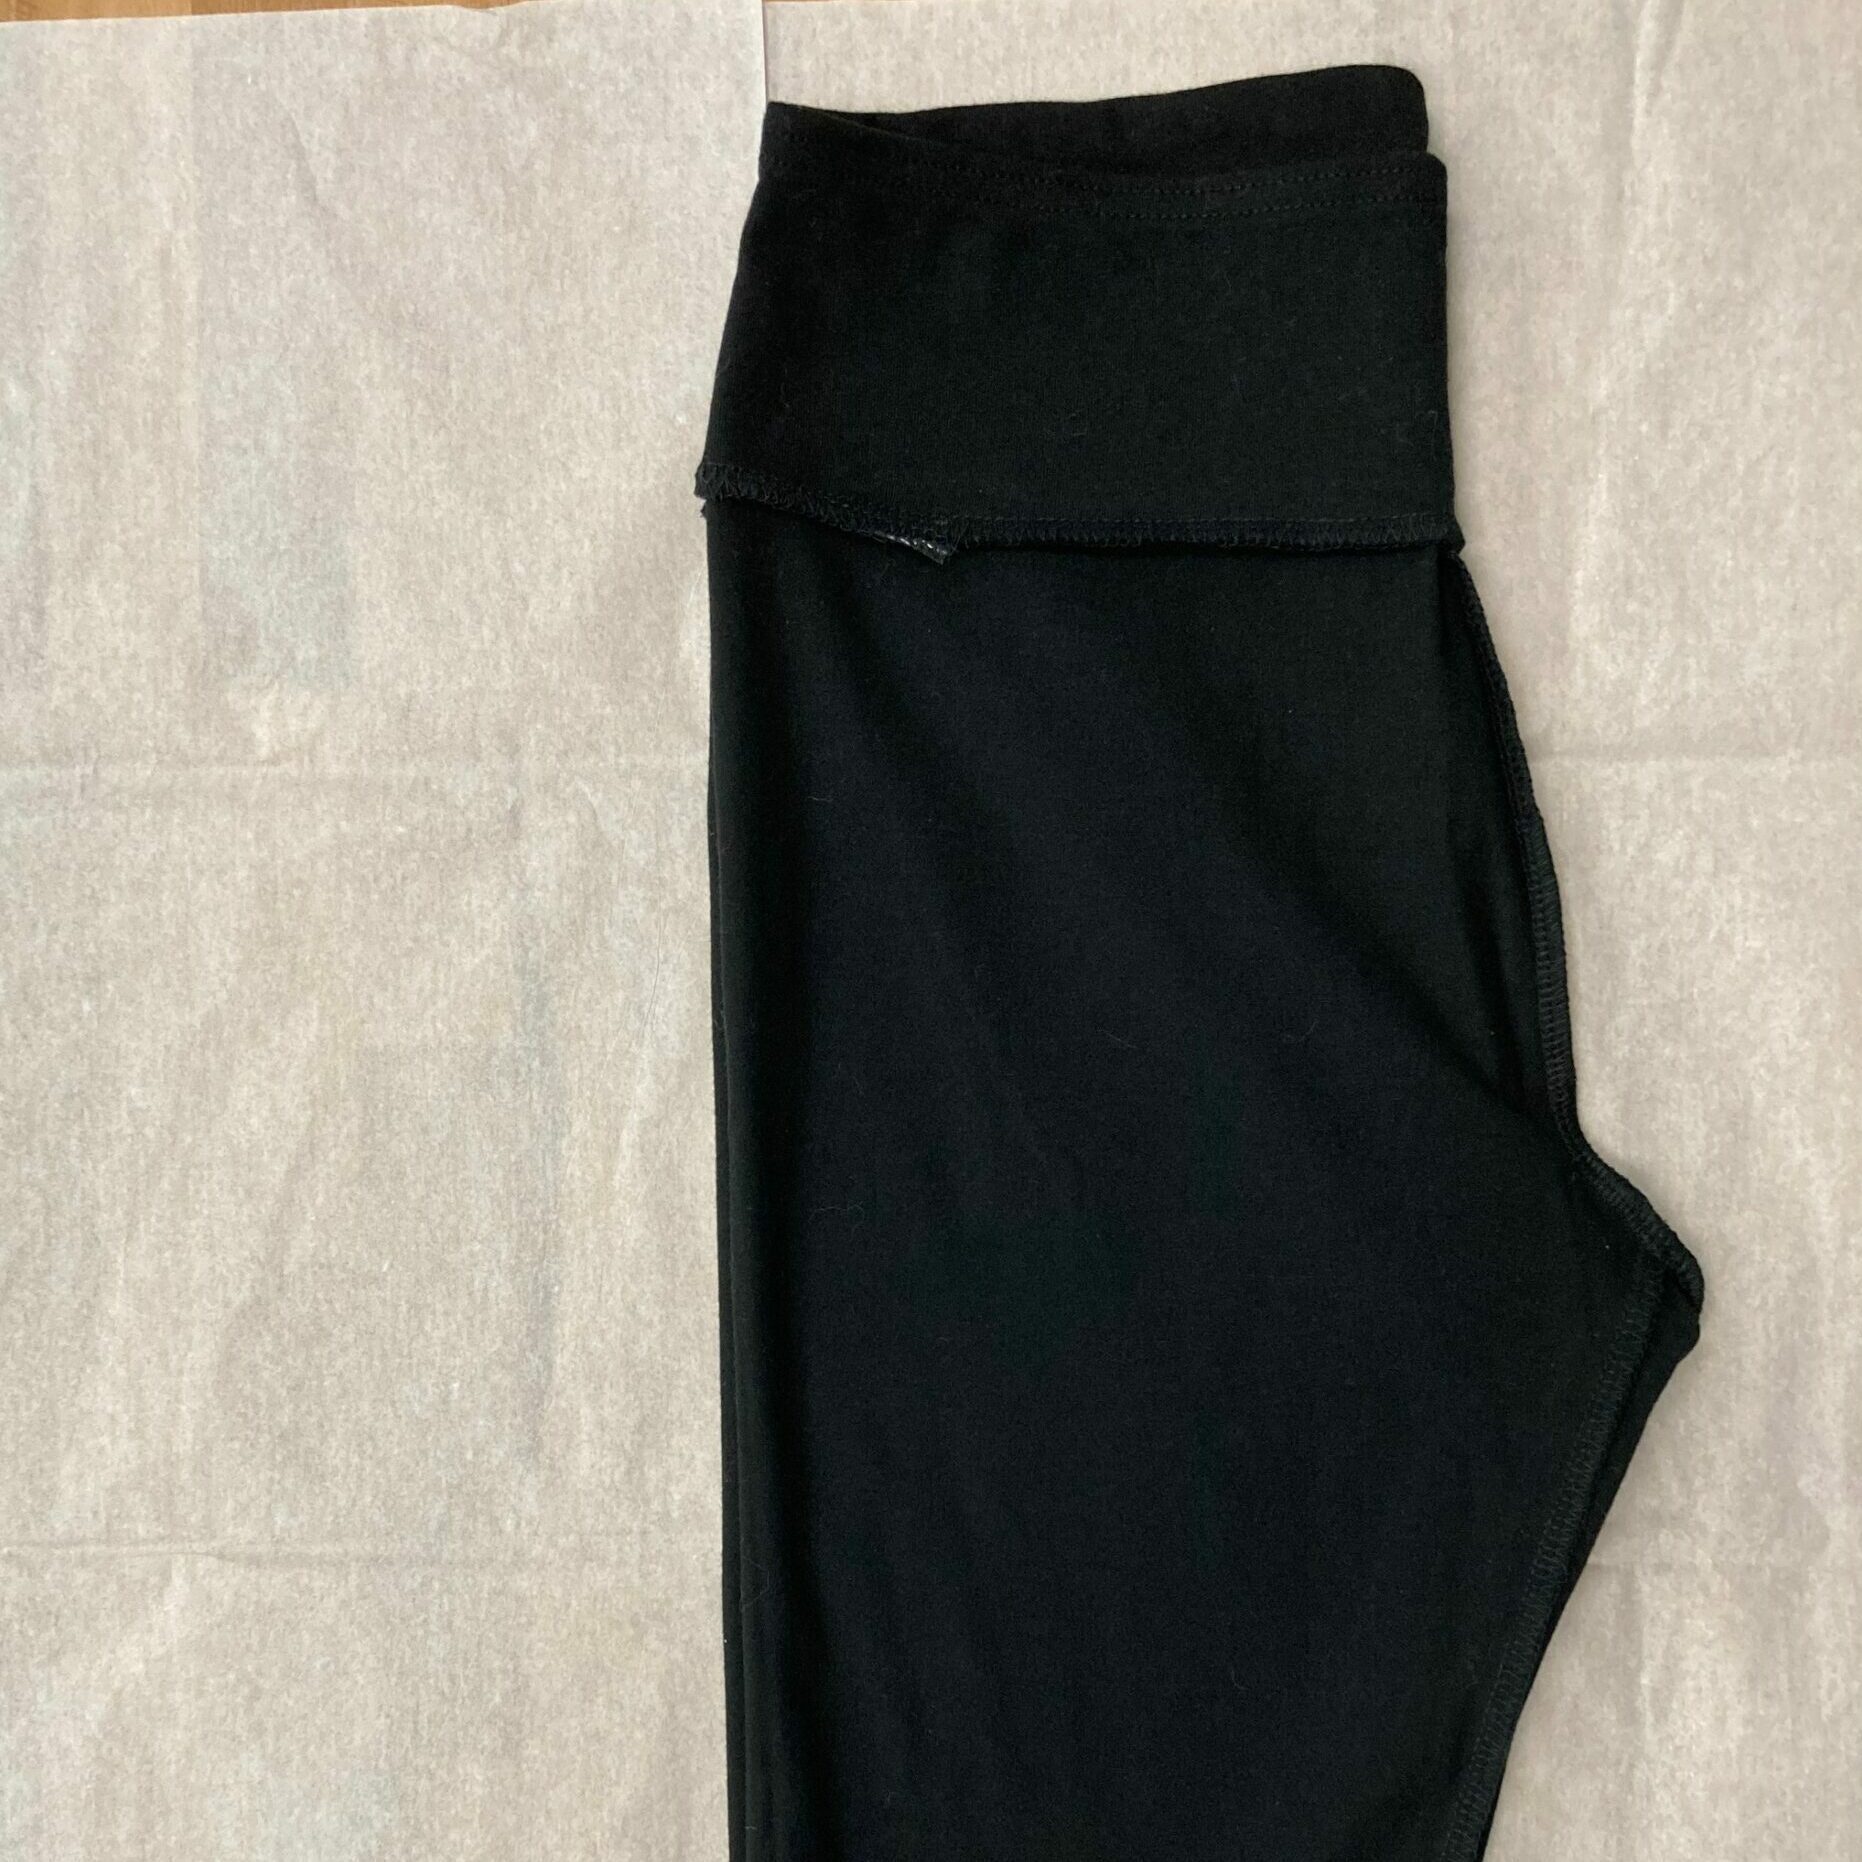 Leggings front laying on top of pattern paper